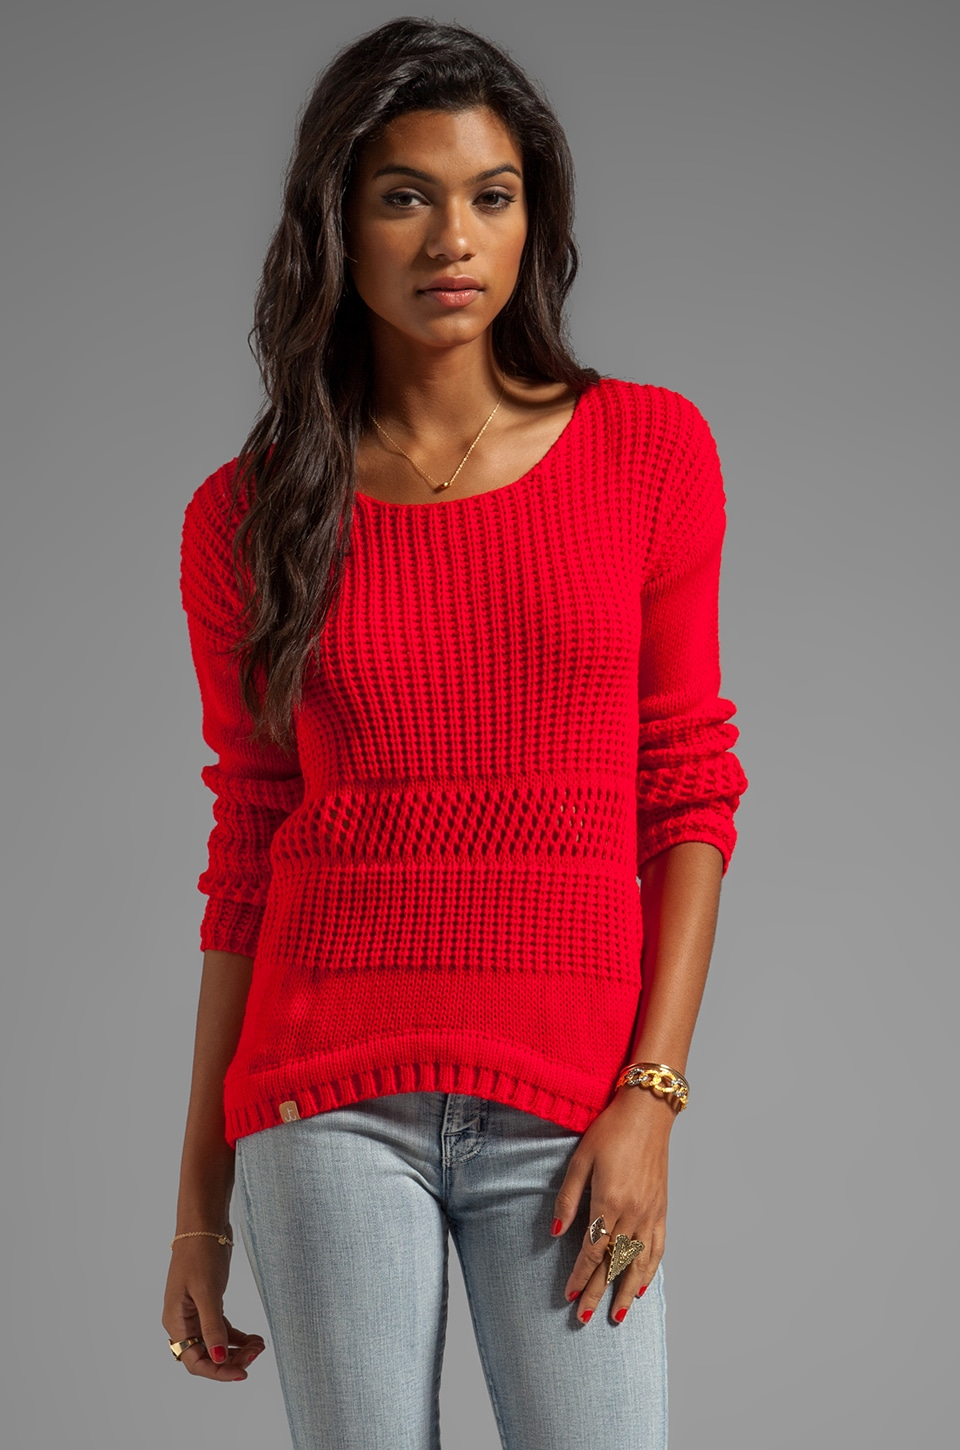 Tallow Kubu Slouch Jumper in Red Lychee